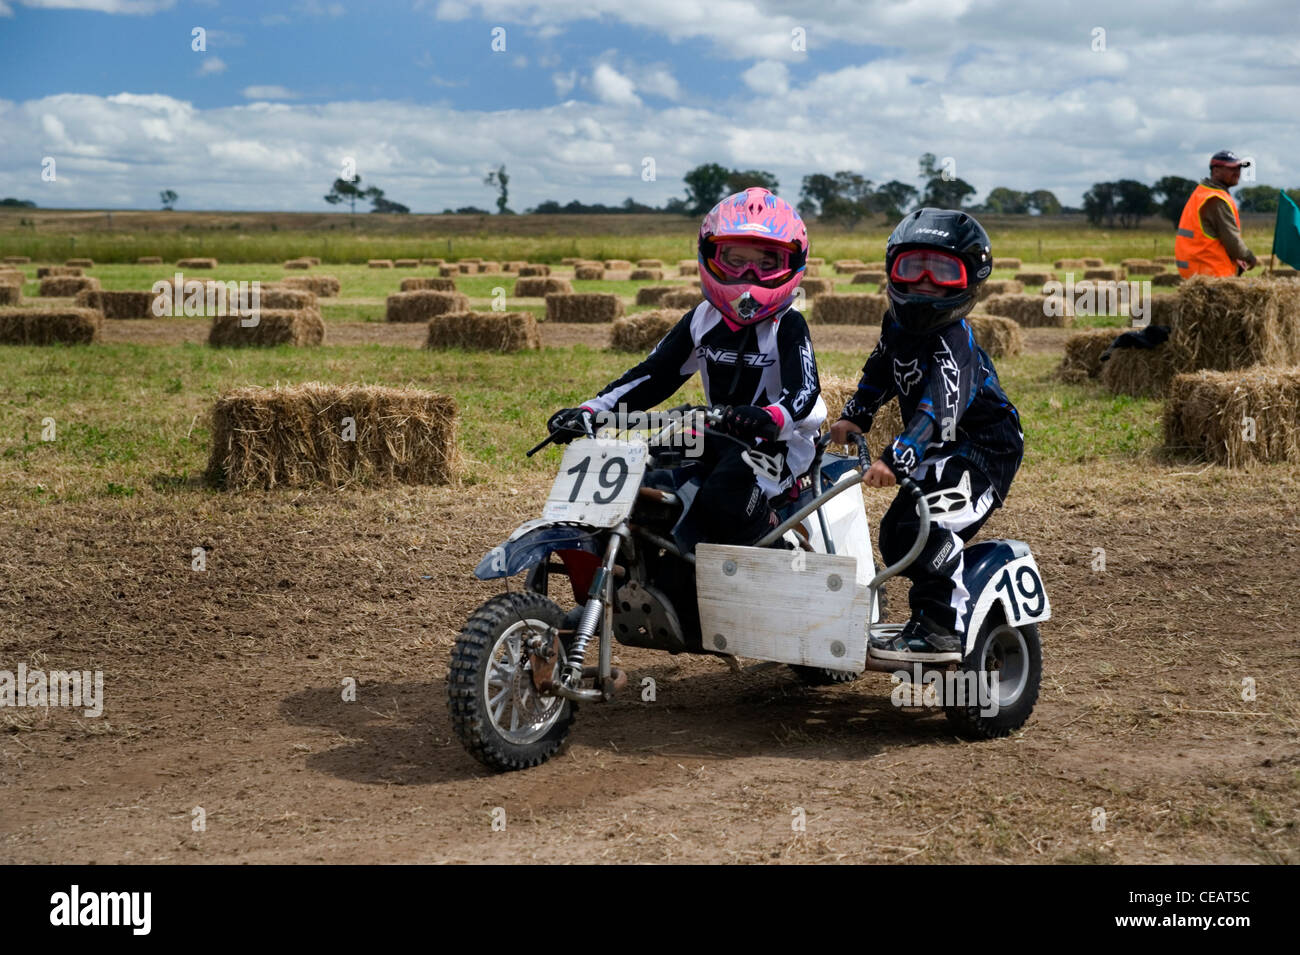 kids sidecar motorcycle racing Stock Photo: 43264408 - Alamy